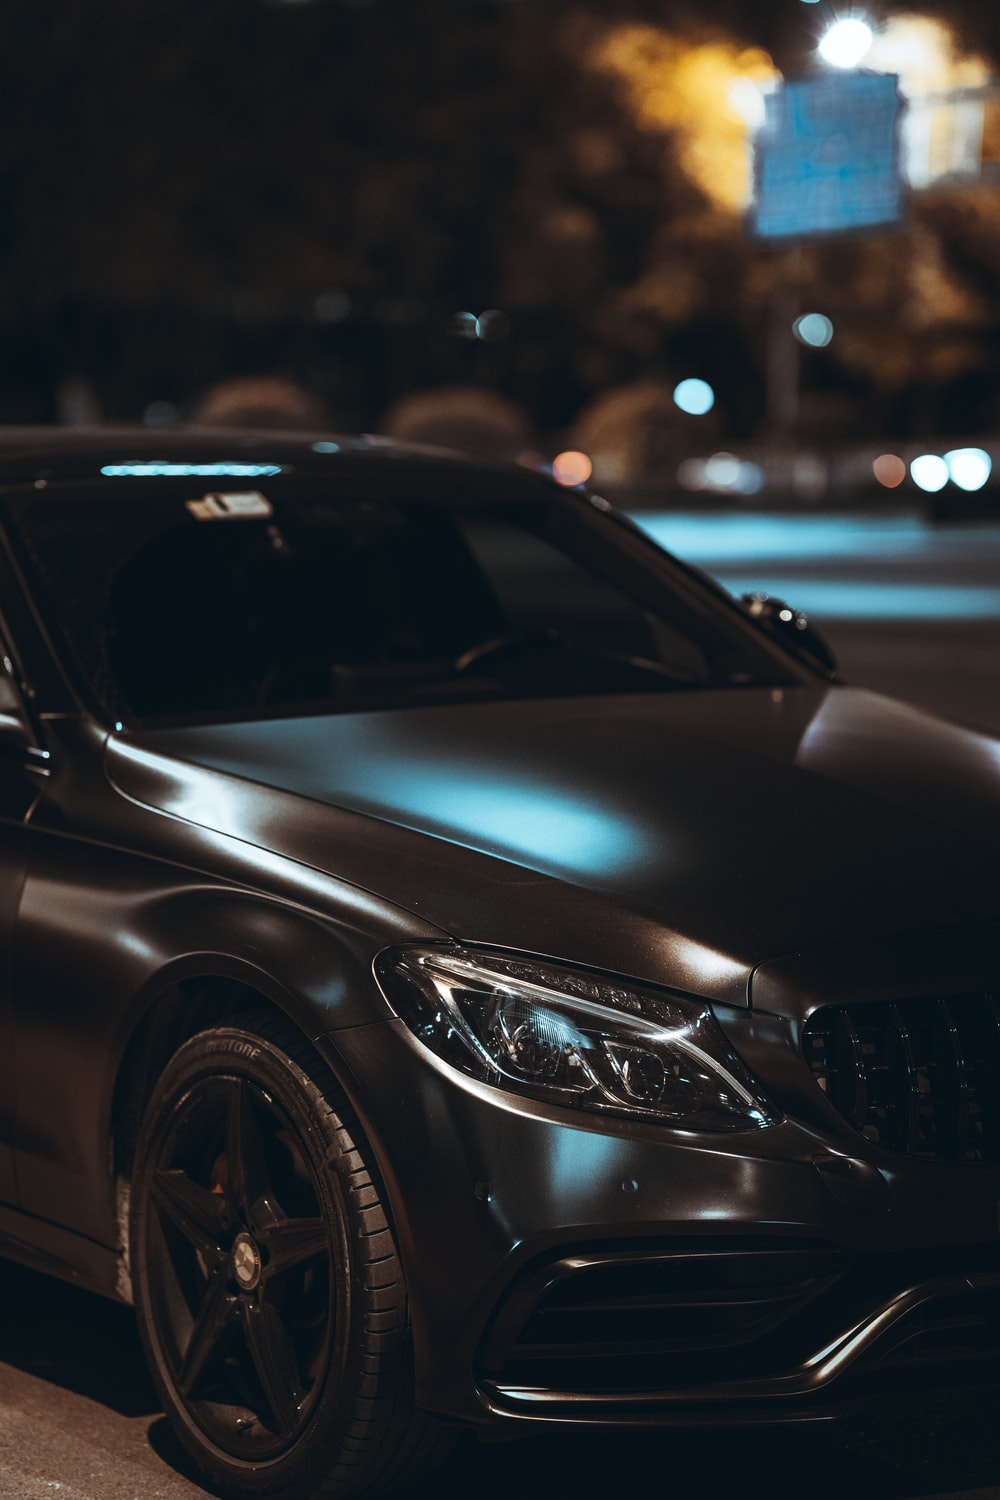 black mercedes benz c class on road during night time